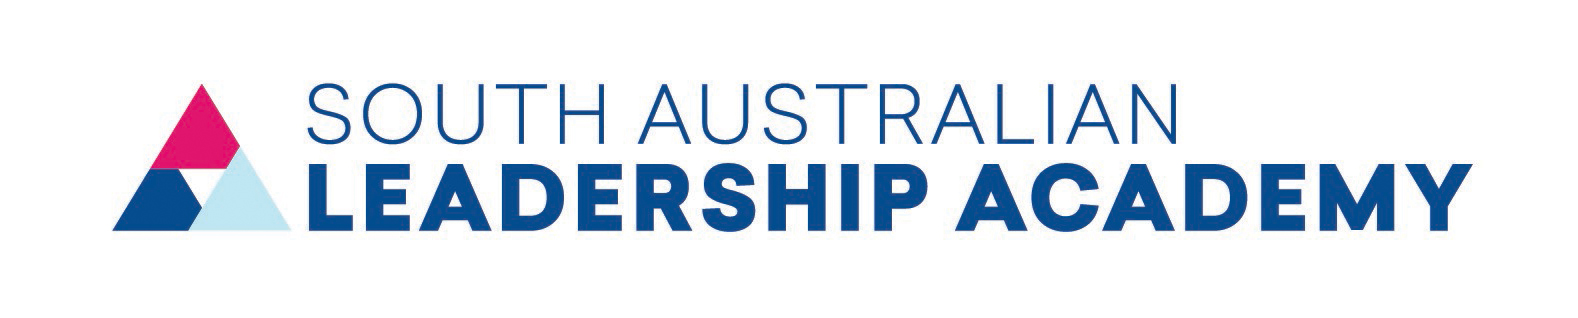 South Australian Leadership Academy